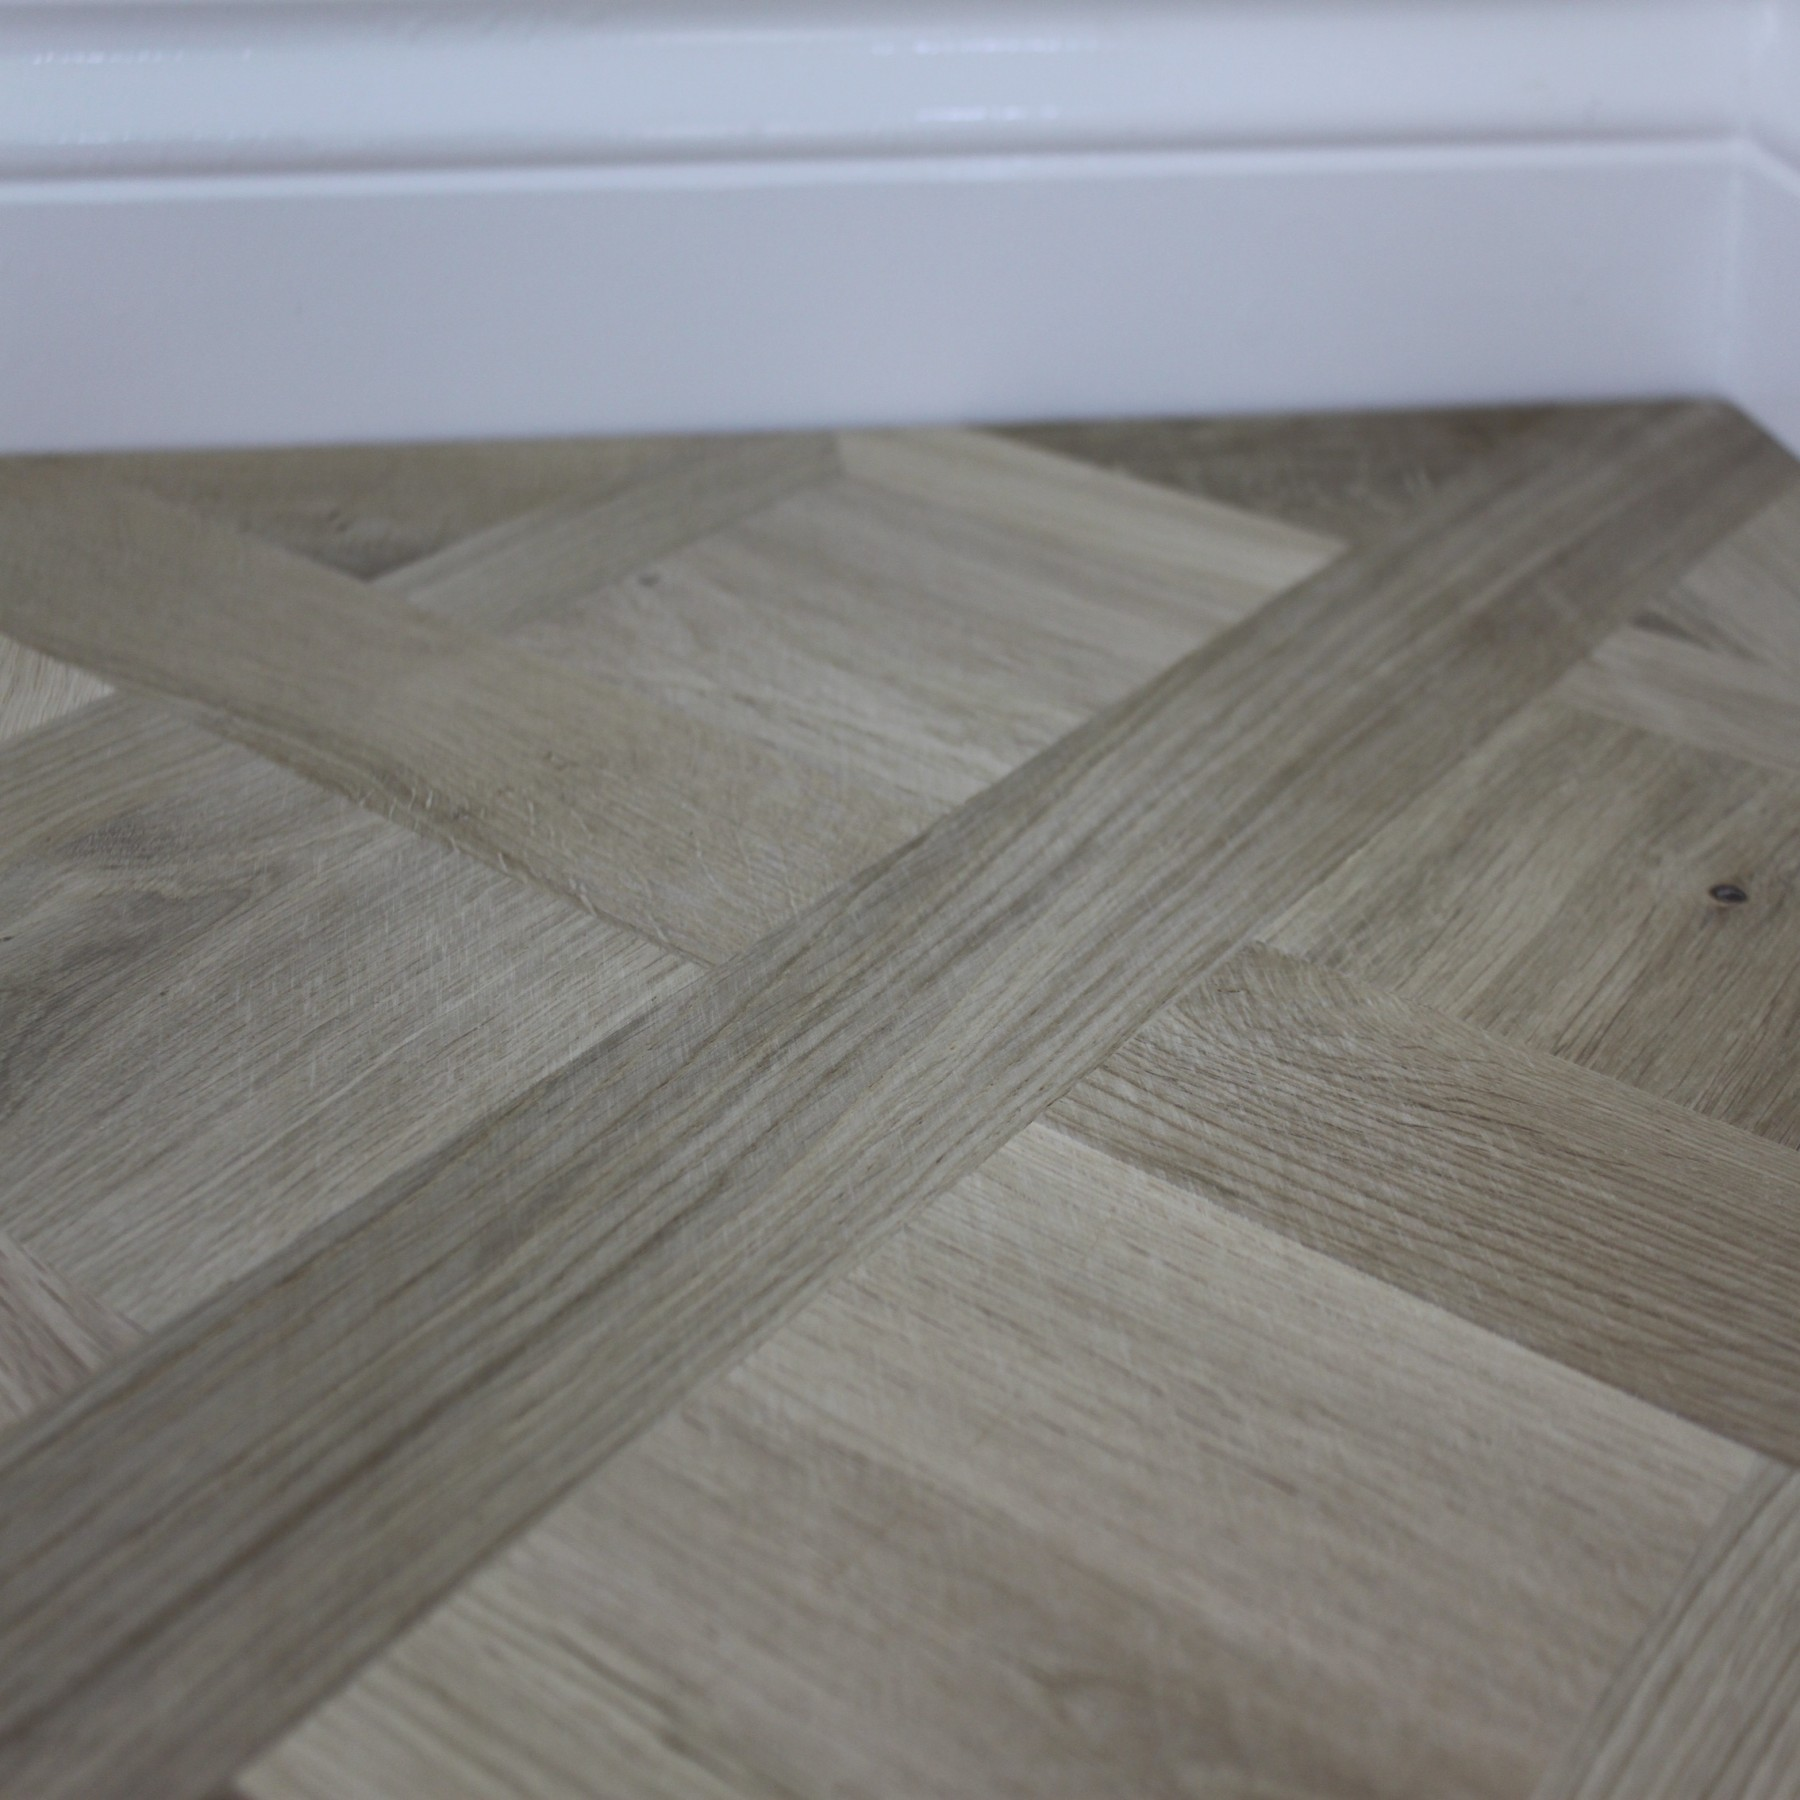 Maxi Versailles Panels  Oak Unfinished  Engineered Wood Flooring  580x580mm